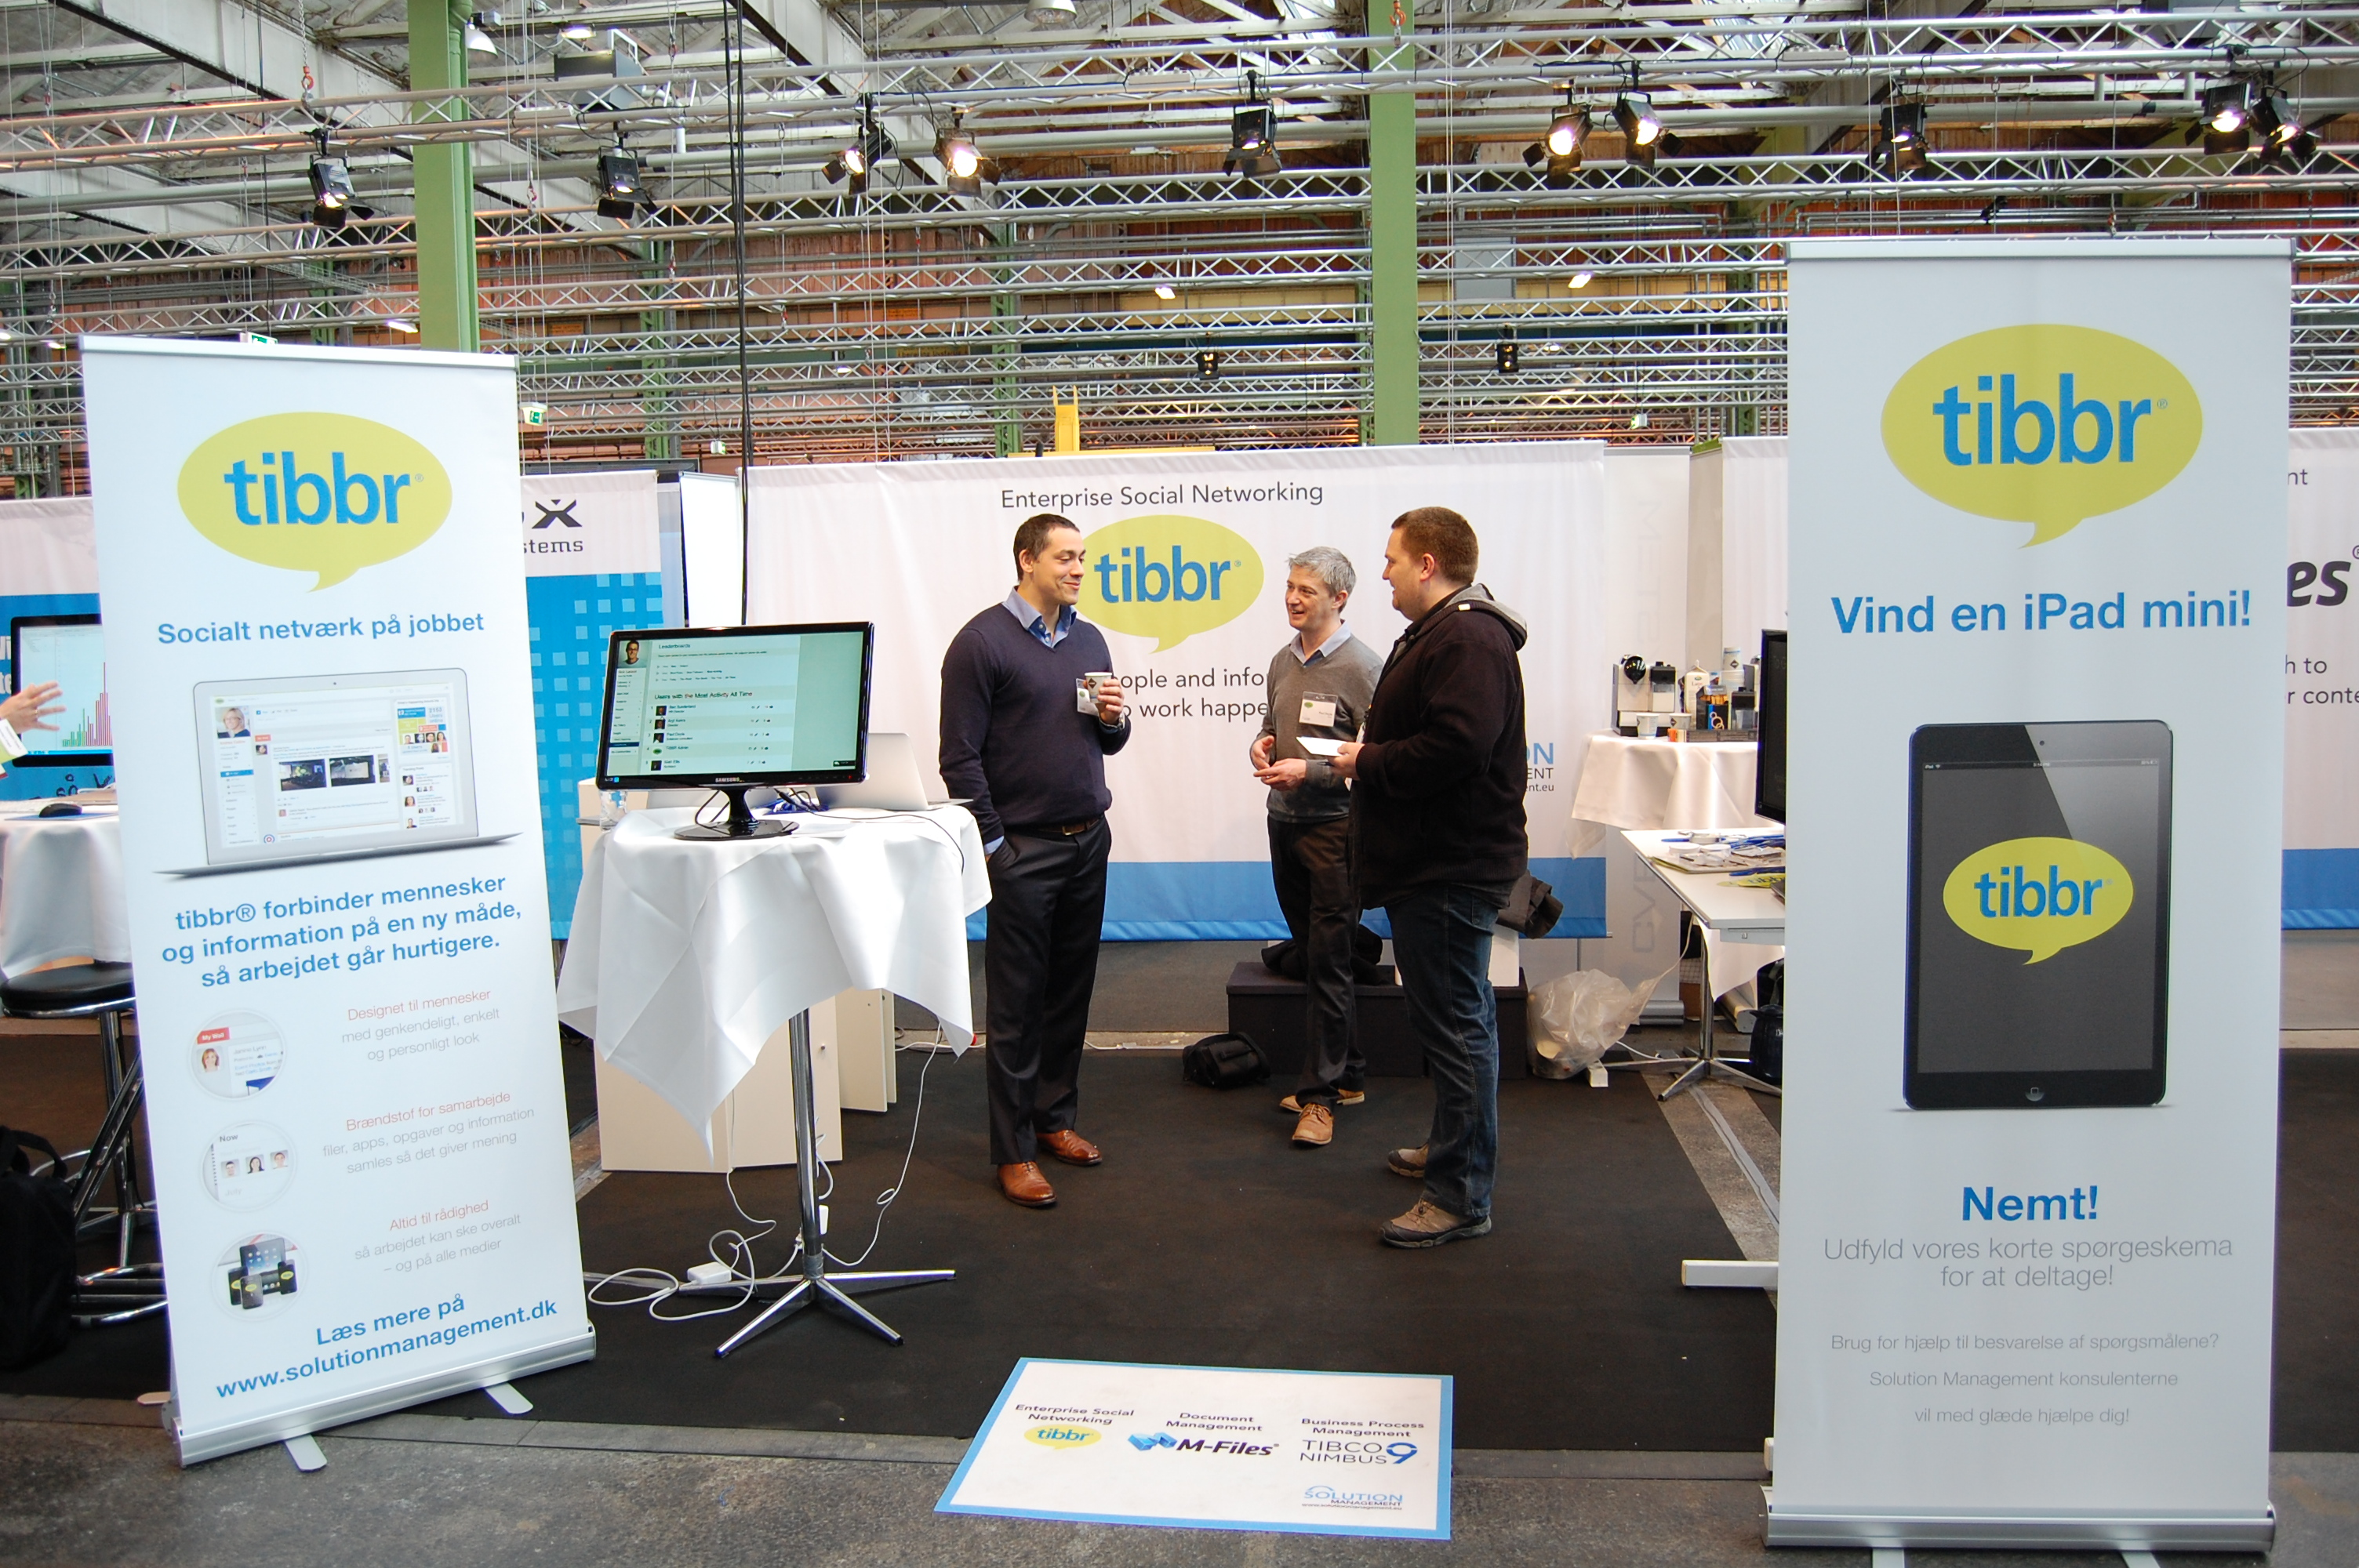 Tibbr stand #cwe13